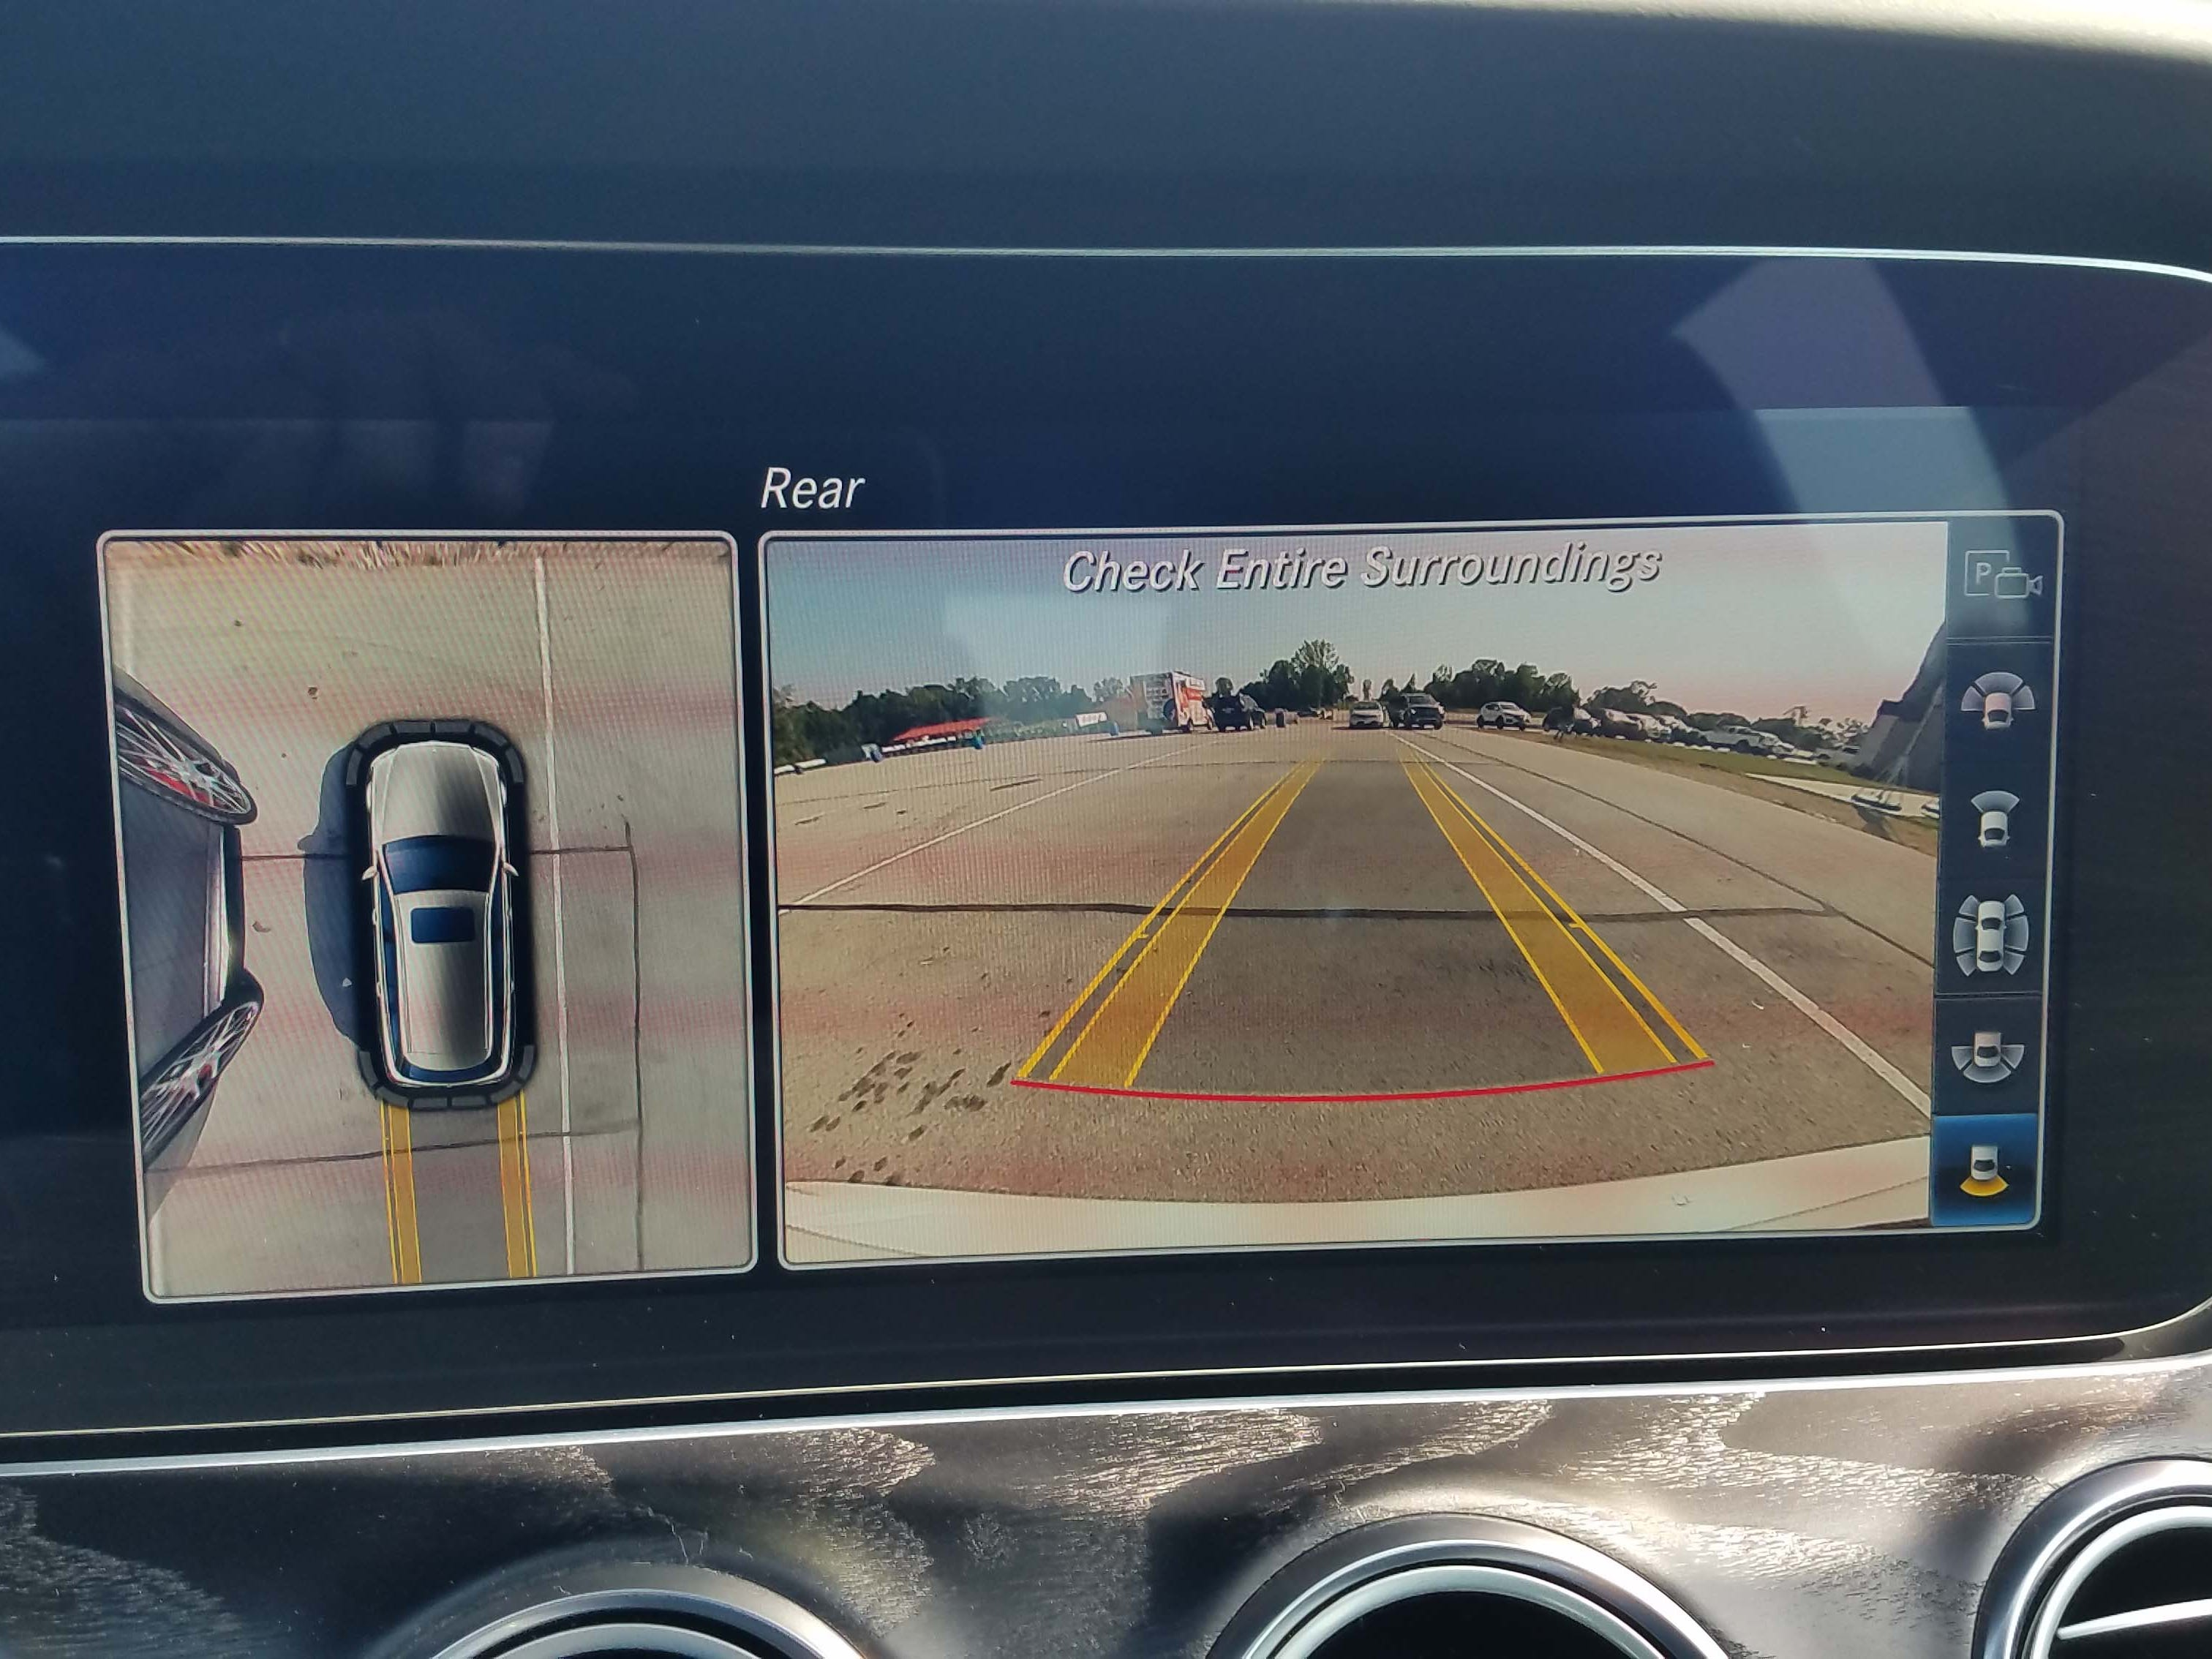 The Mercedes-AMG E63 S wagon brings a long menu of cool features like 360-degree camera for surveying the car's immediate vicinity.